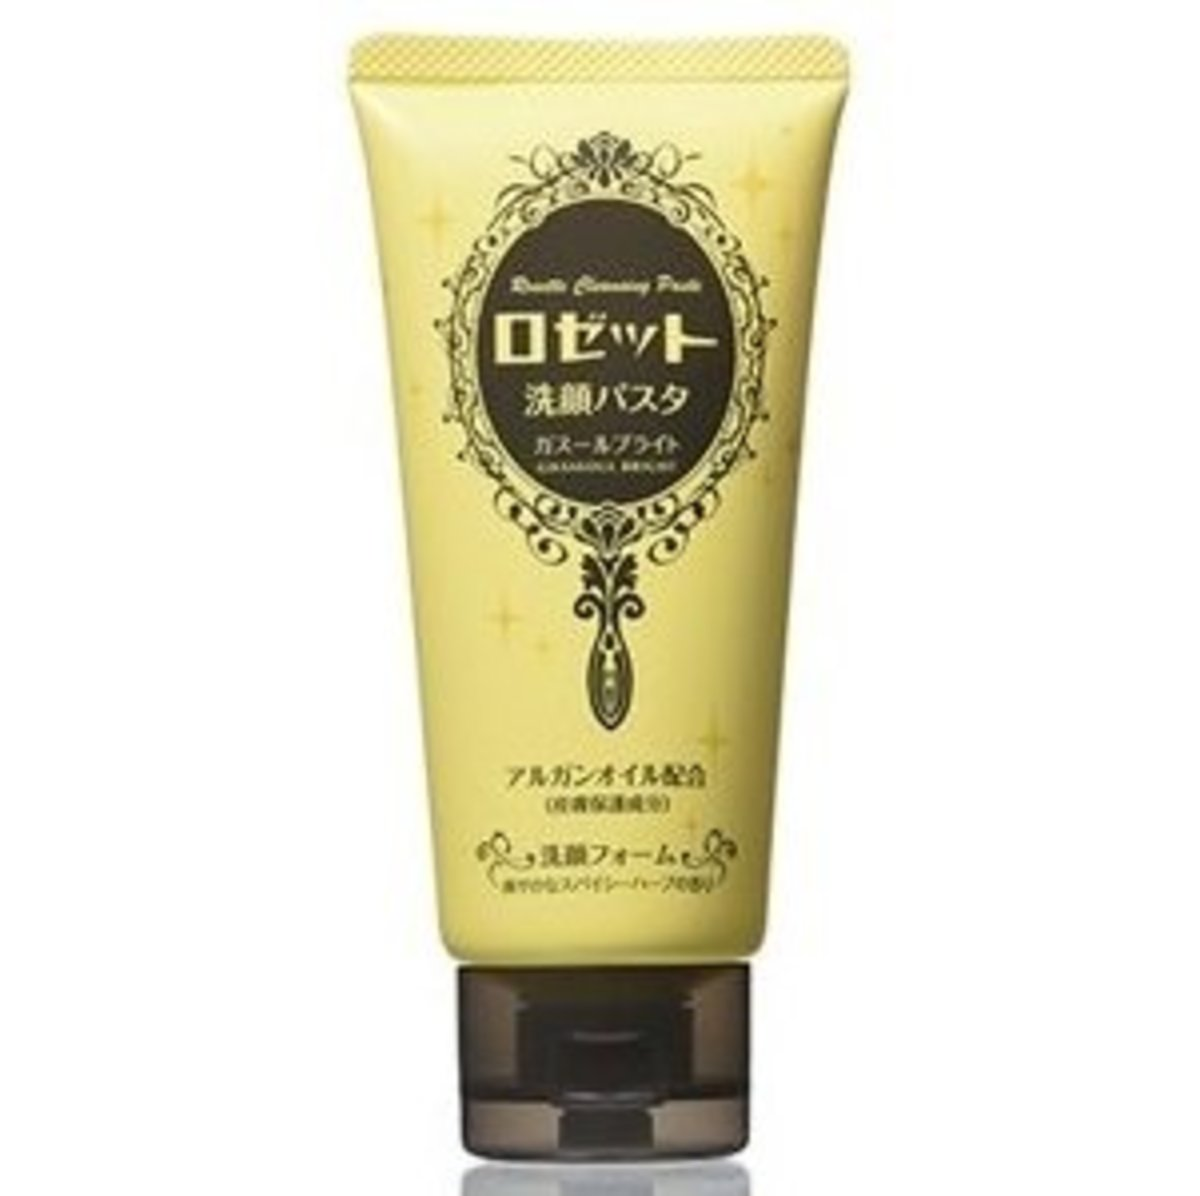 Sea mud fresh and bright cleanser 120g